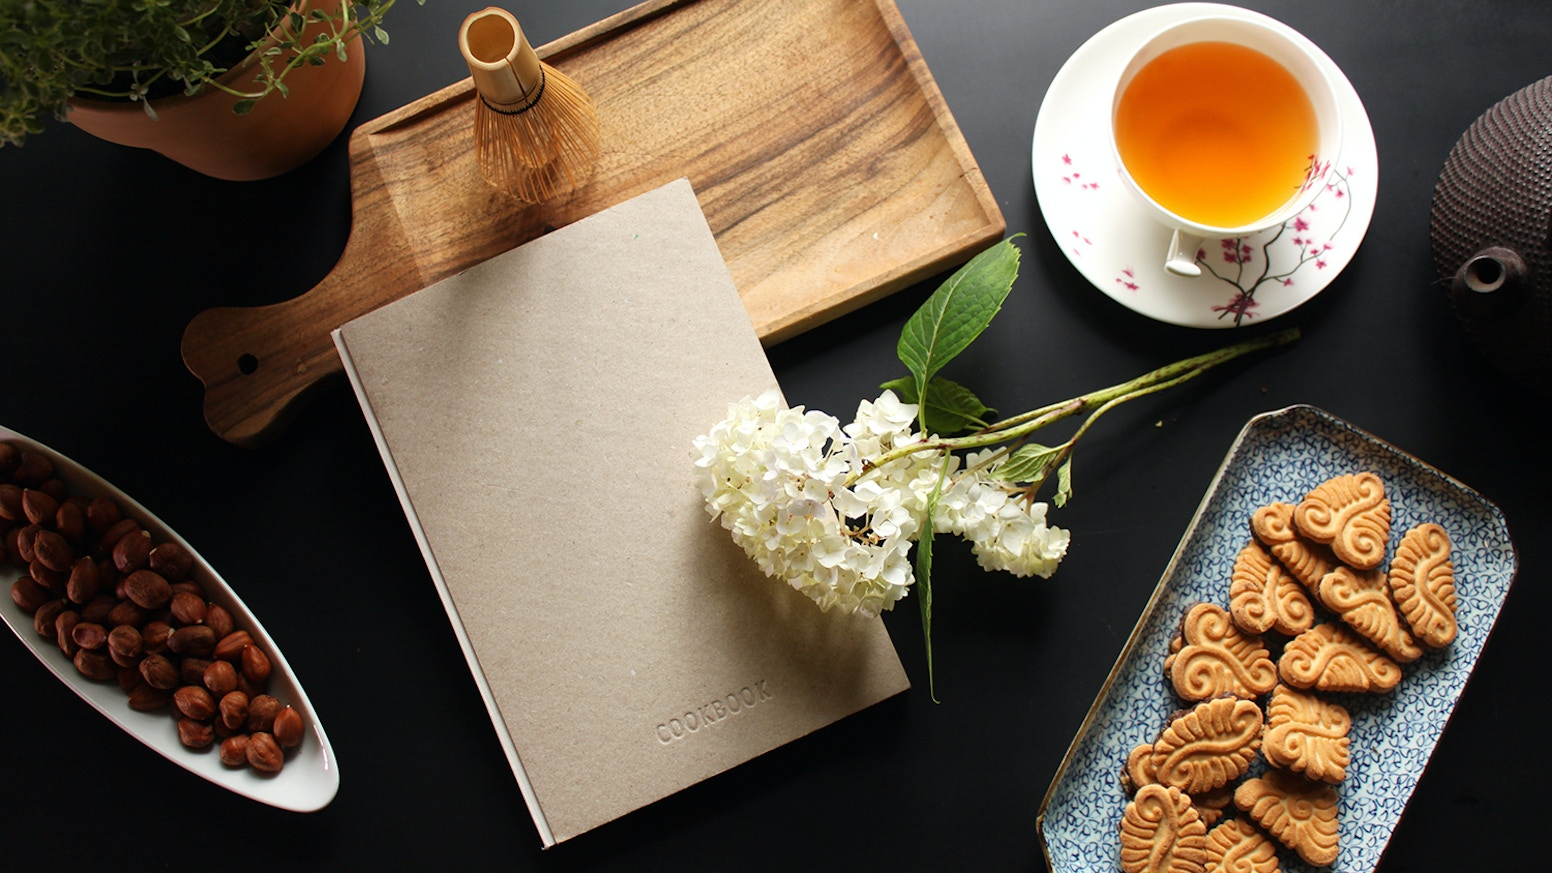 A cooking journal with a unique interface that helps you develop signature recipes and create a personal culinary heritage